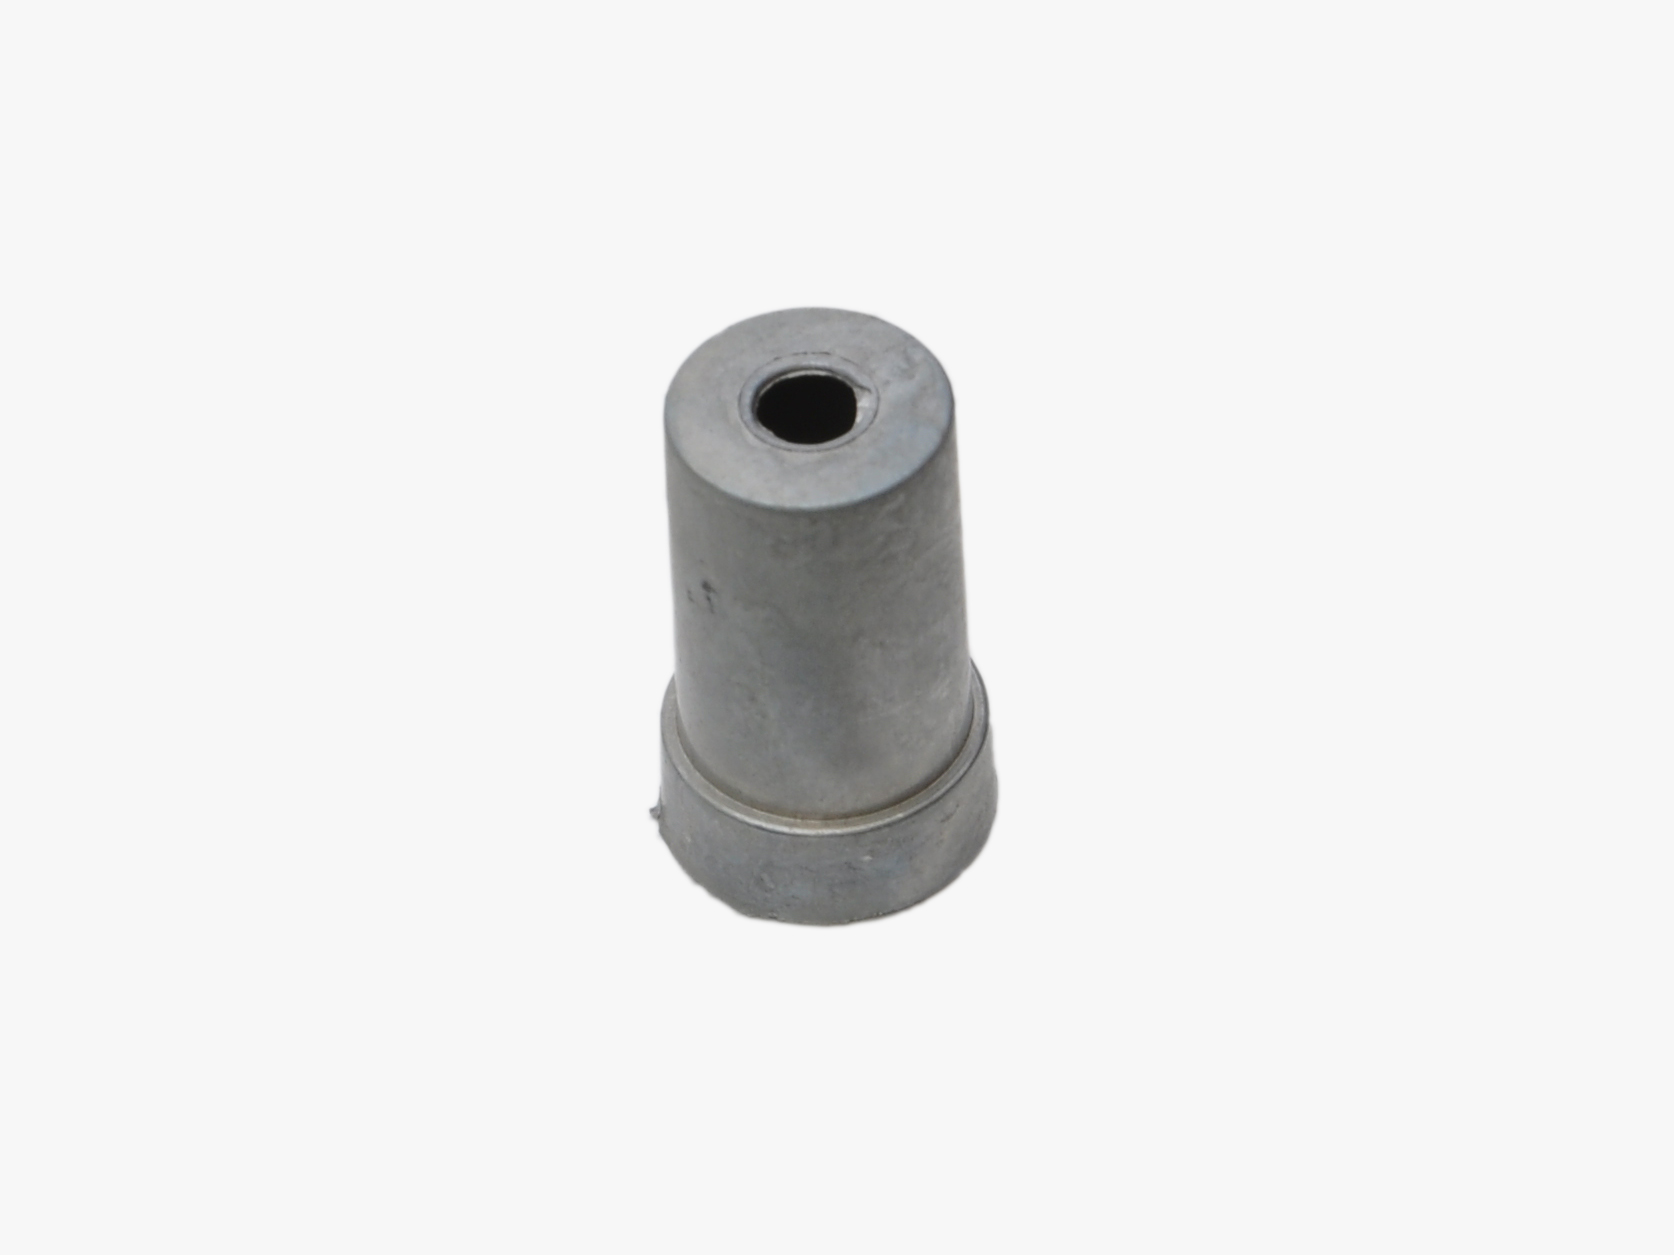 Zinc Die Casting High Precision Die Casting Hardware Parts